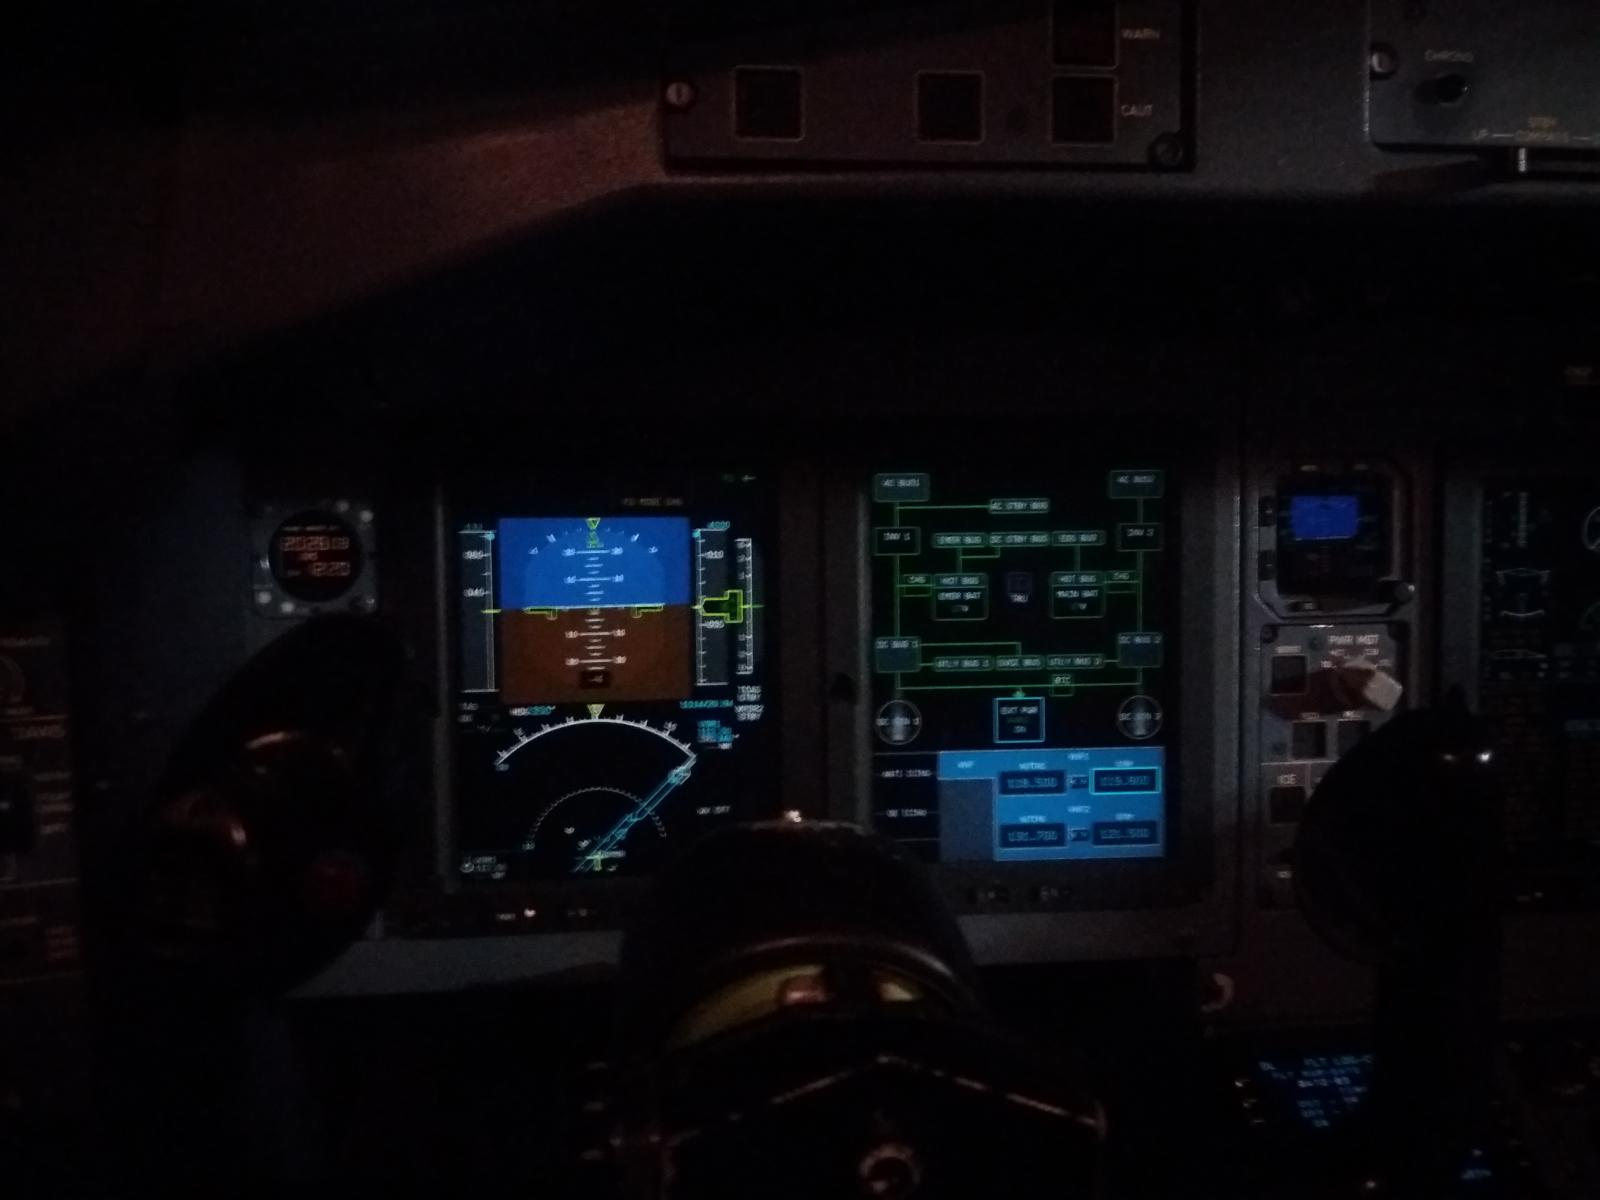 the cockpit of the ATR-72-600